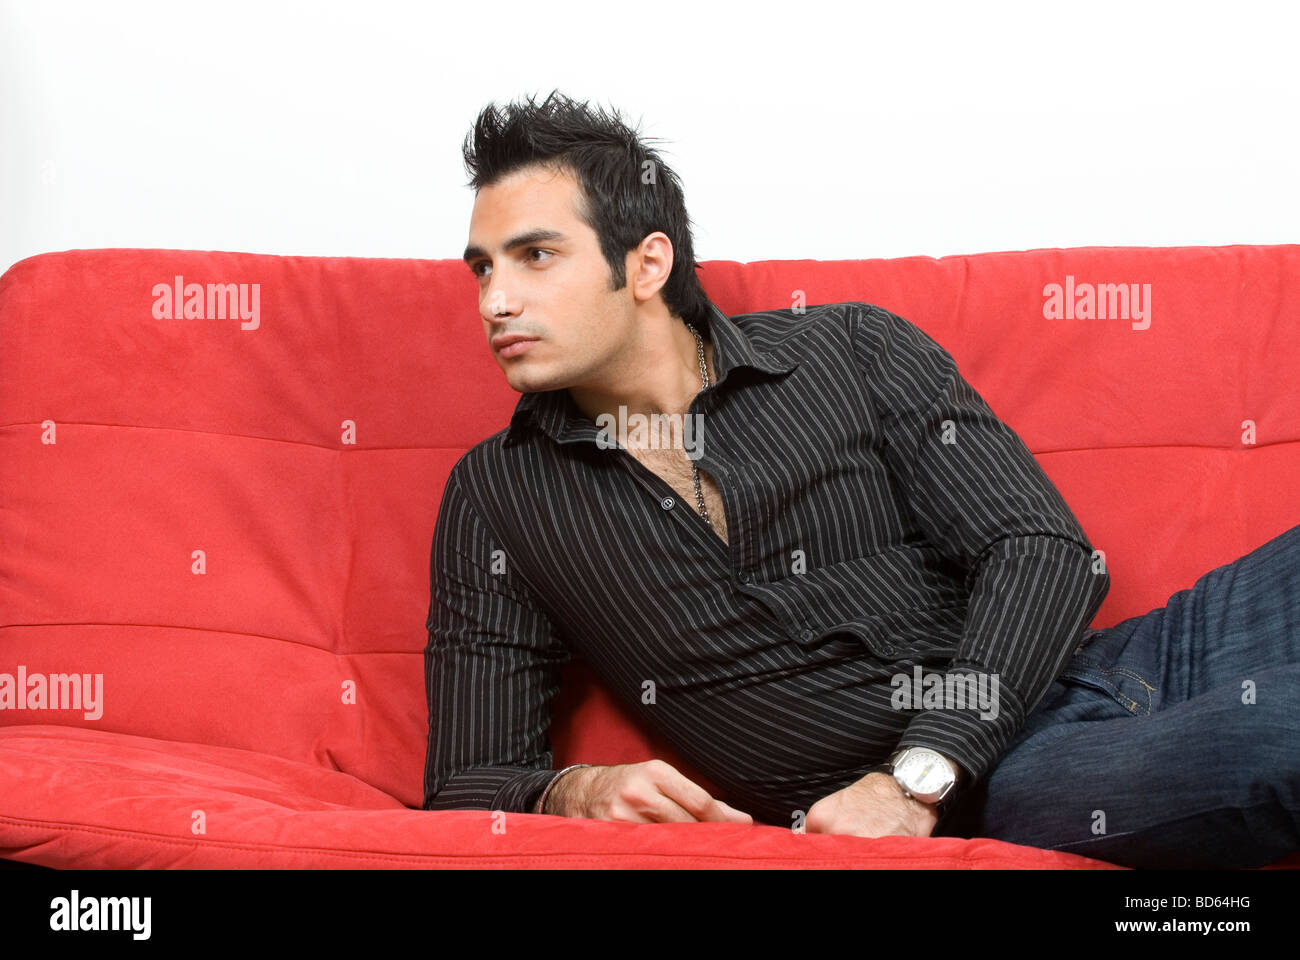 Young man sat on red sofa - Stock Image